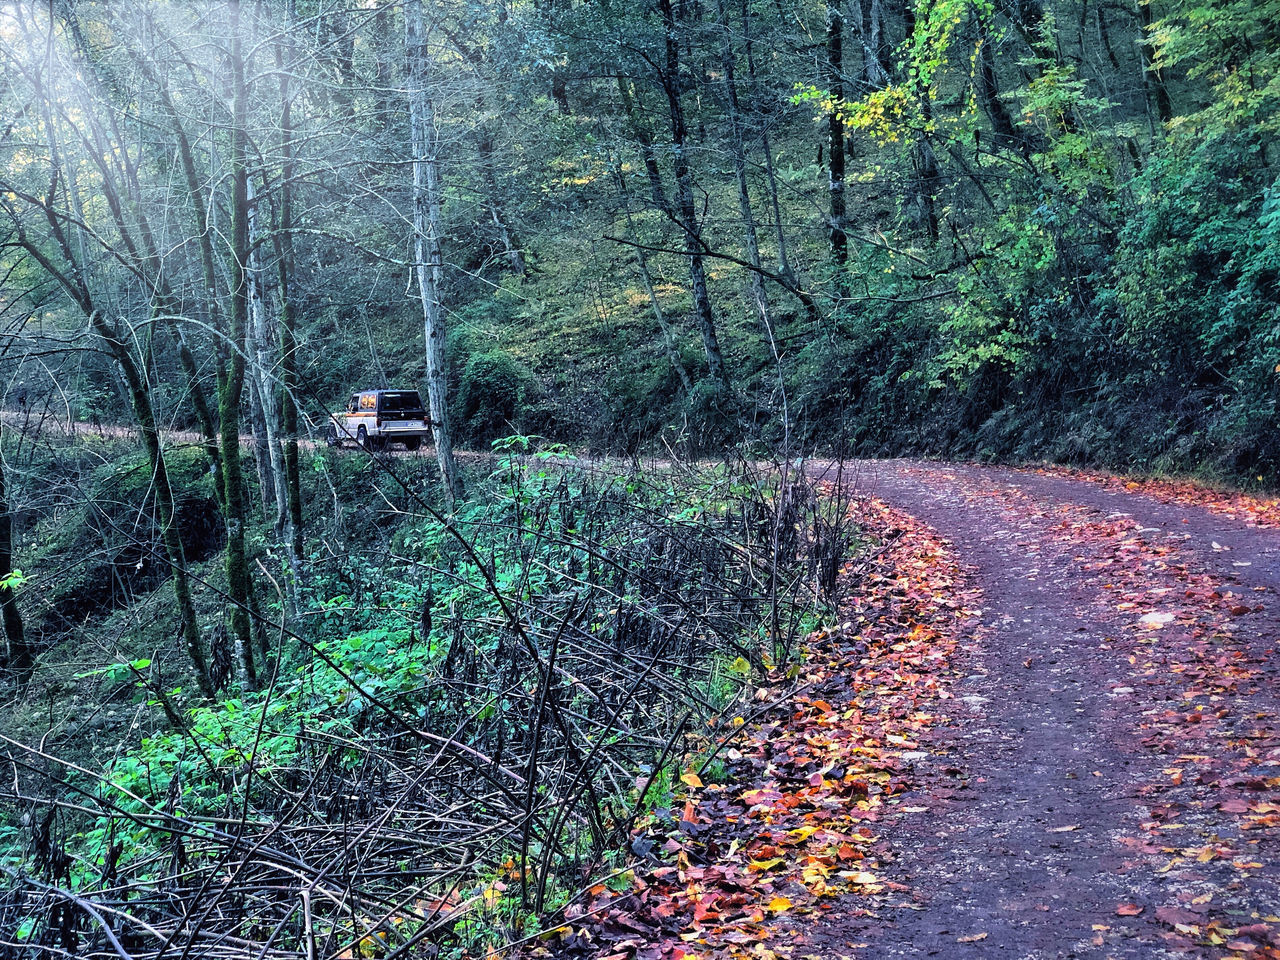 ROAD AMIDST LEAVES IN FOREST